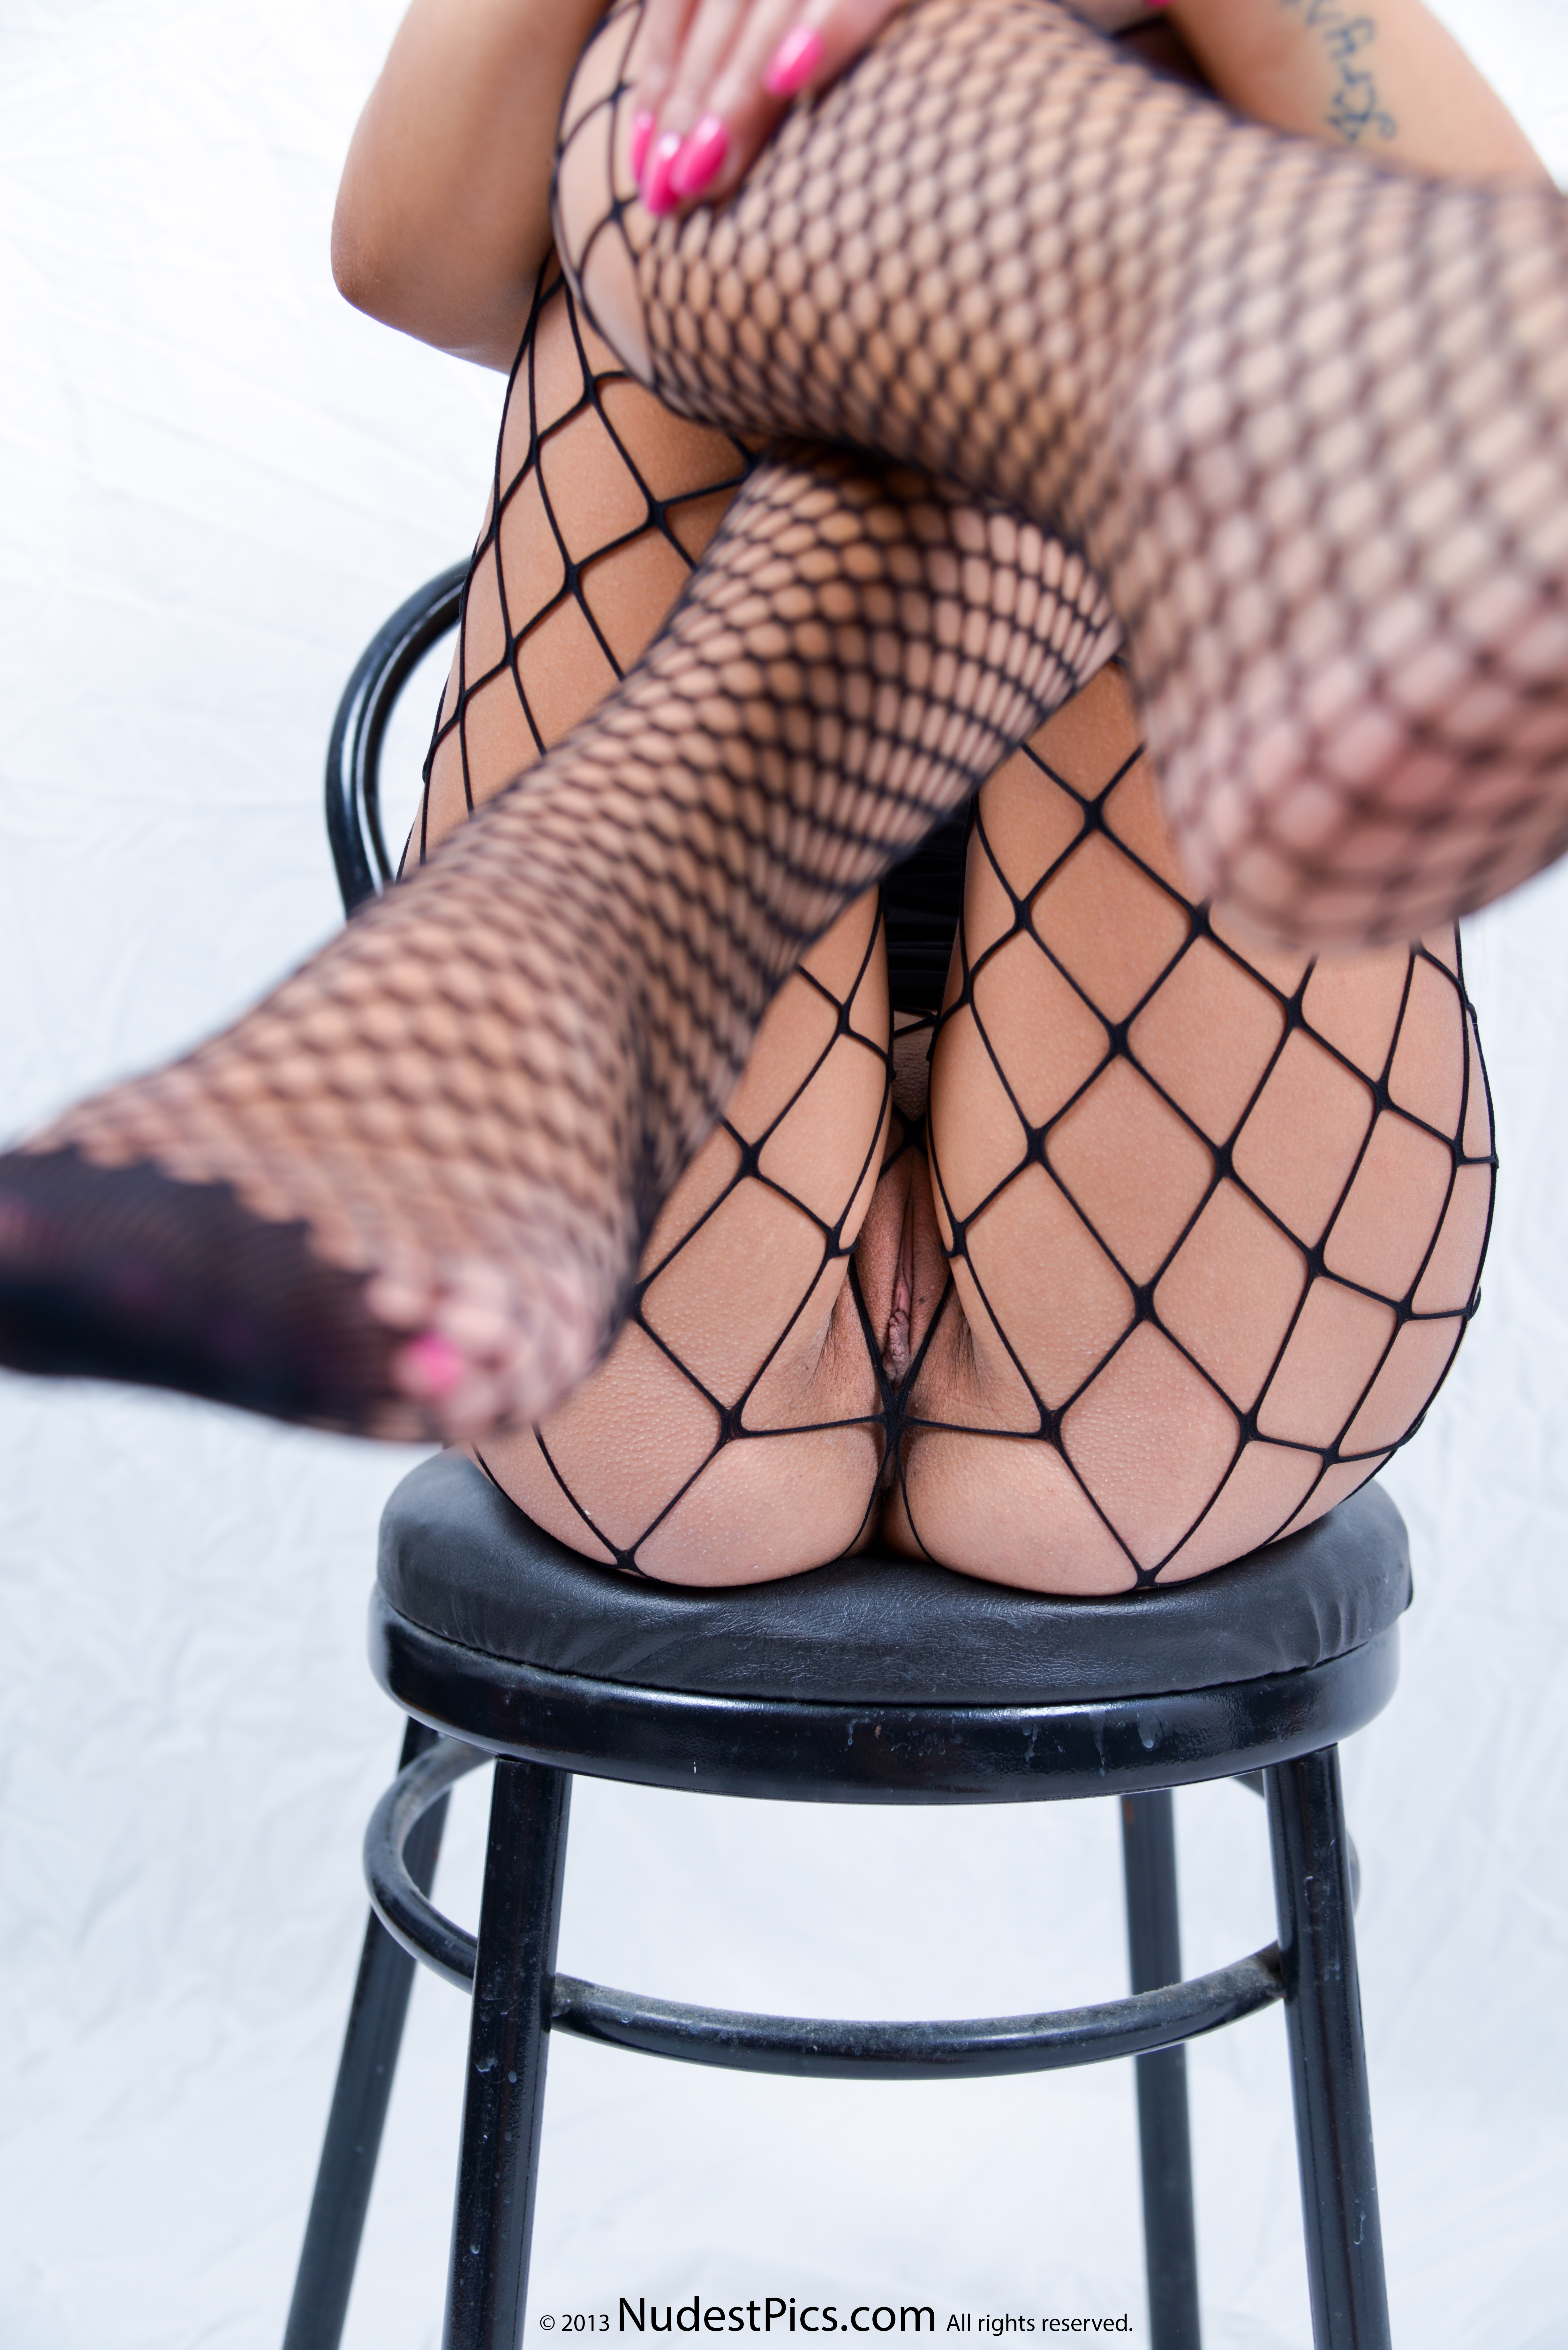 Pussy in Sexy Fishnets Crossing Legs Up on Chair HD